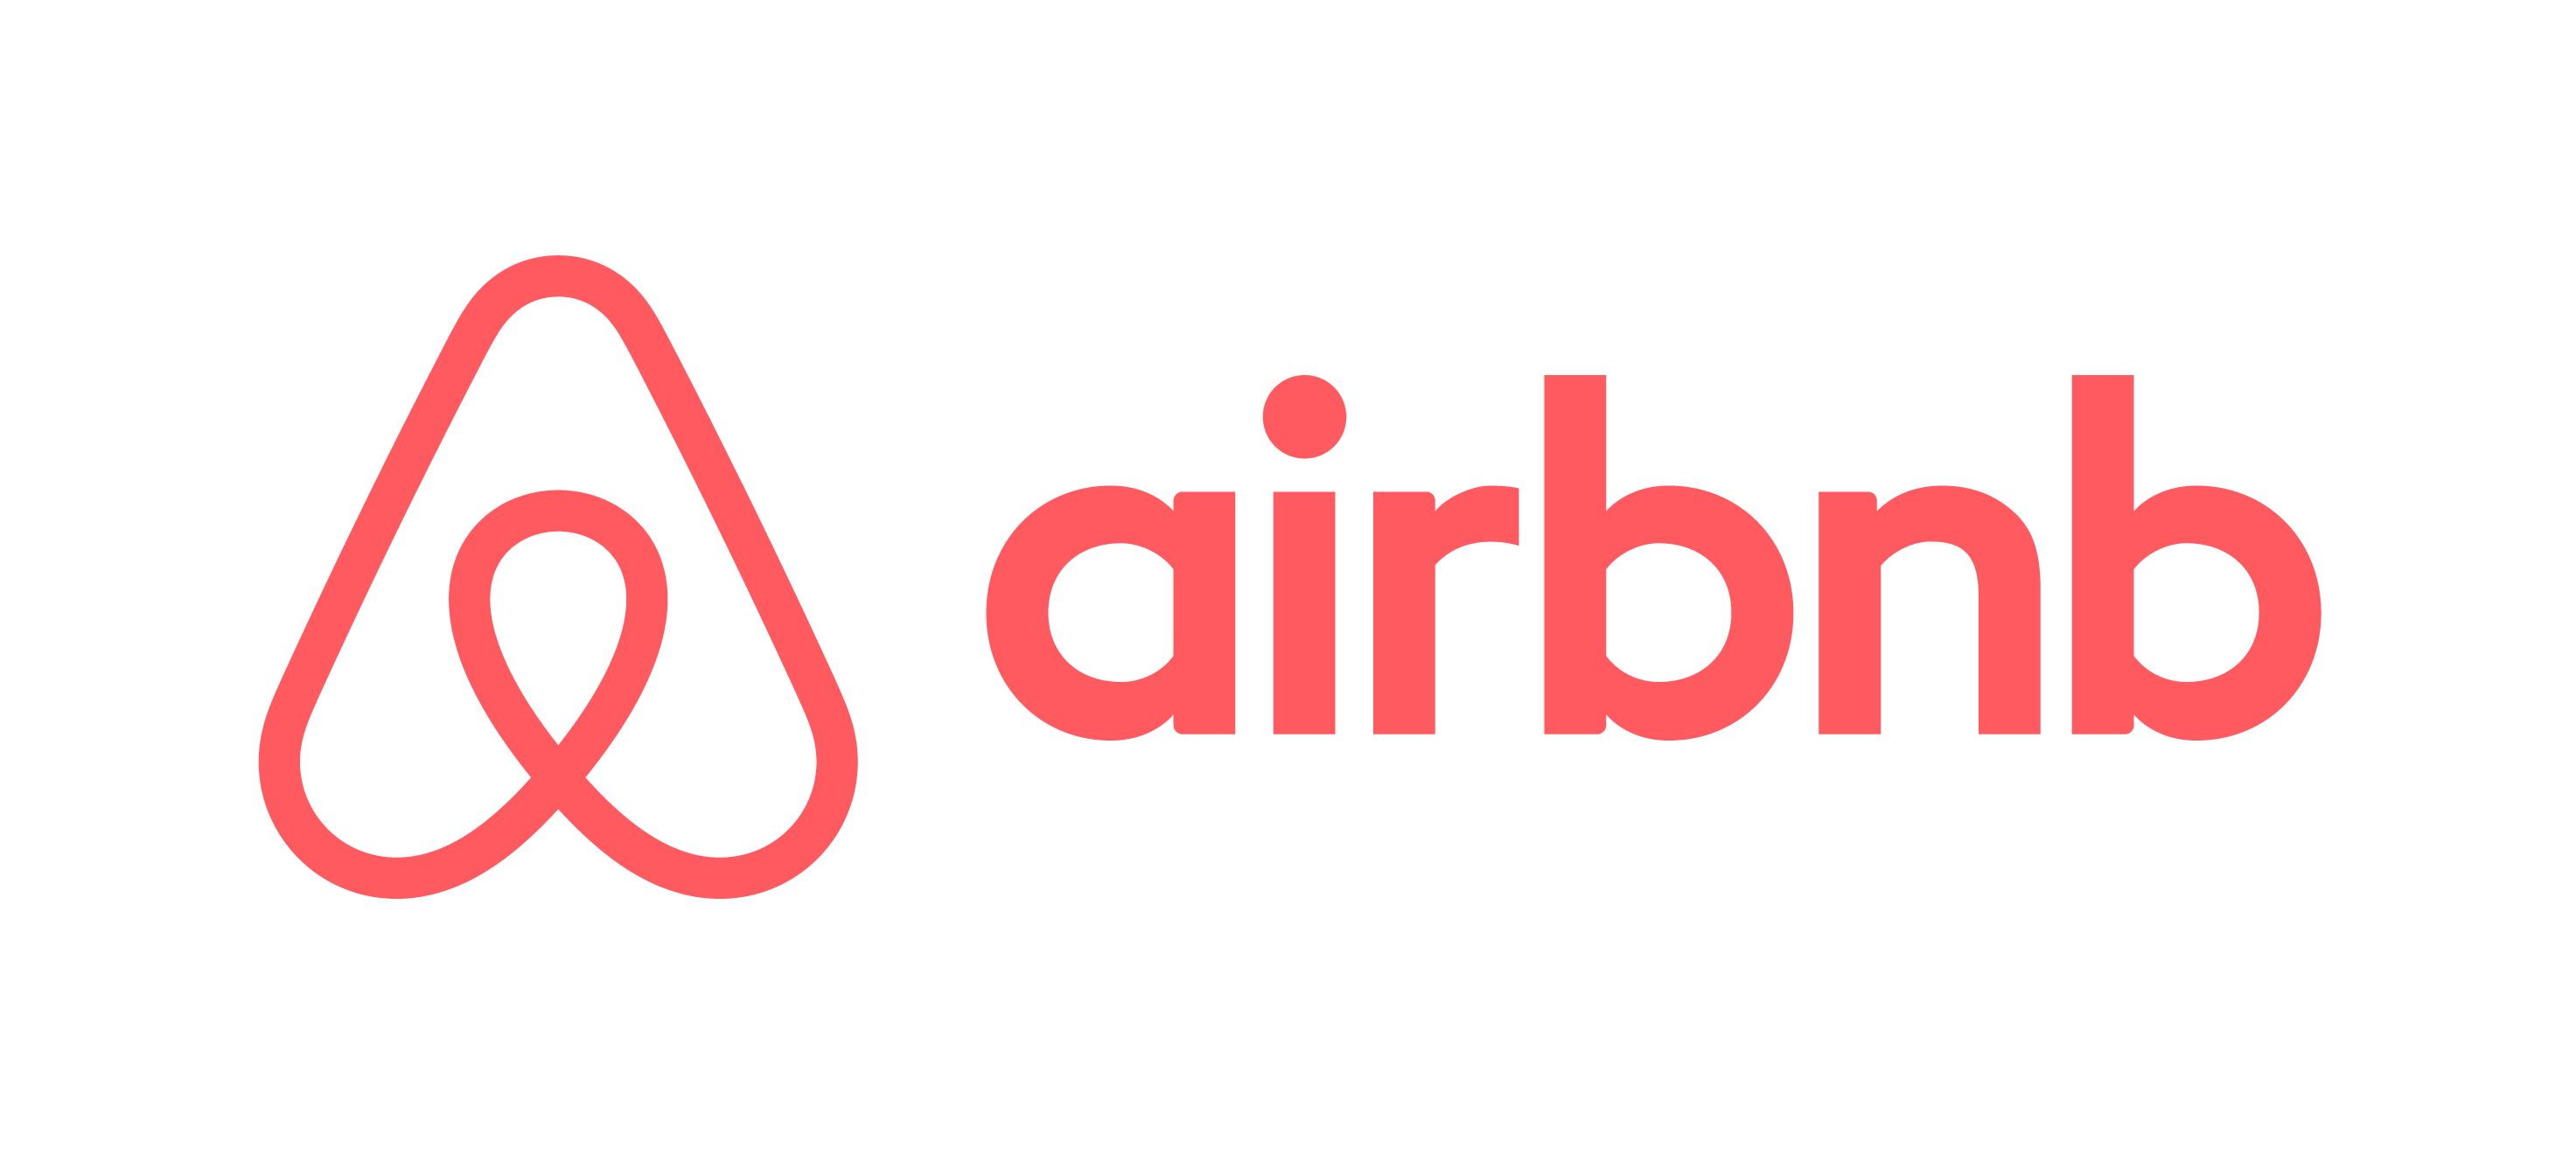 1.airbnb_horizontal_lockup_web copy